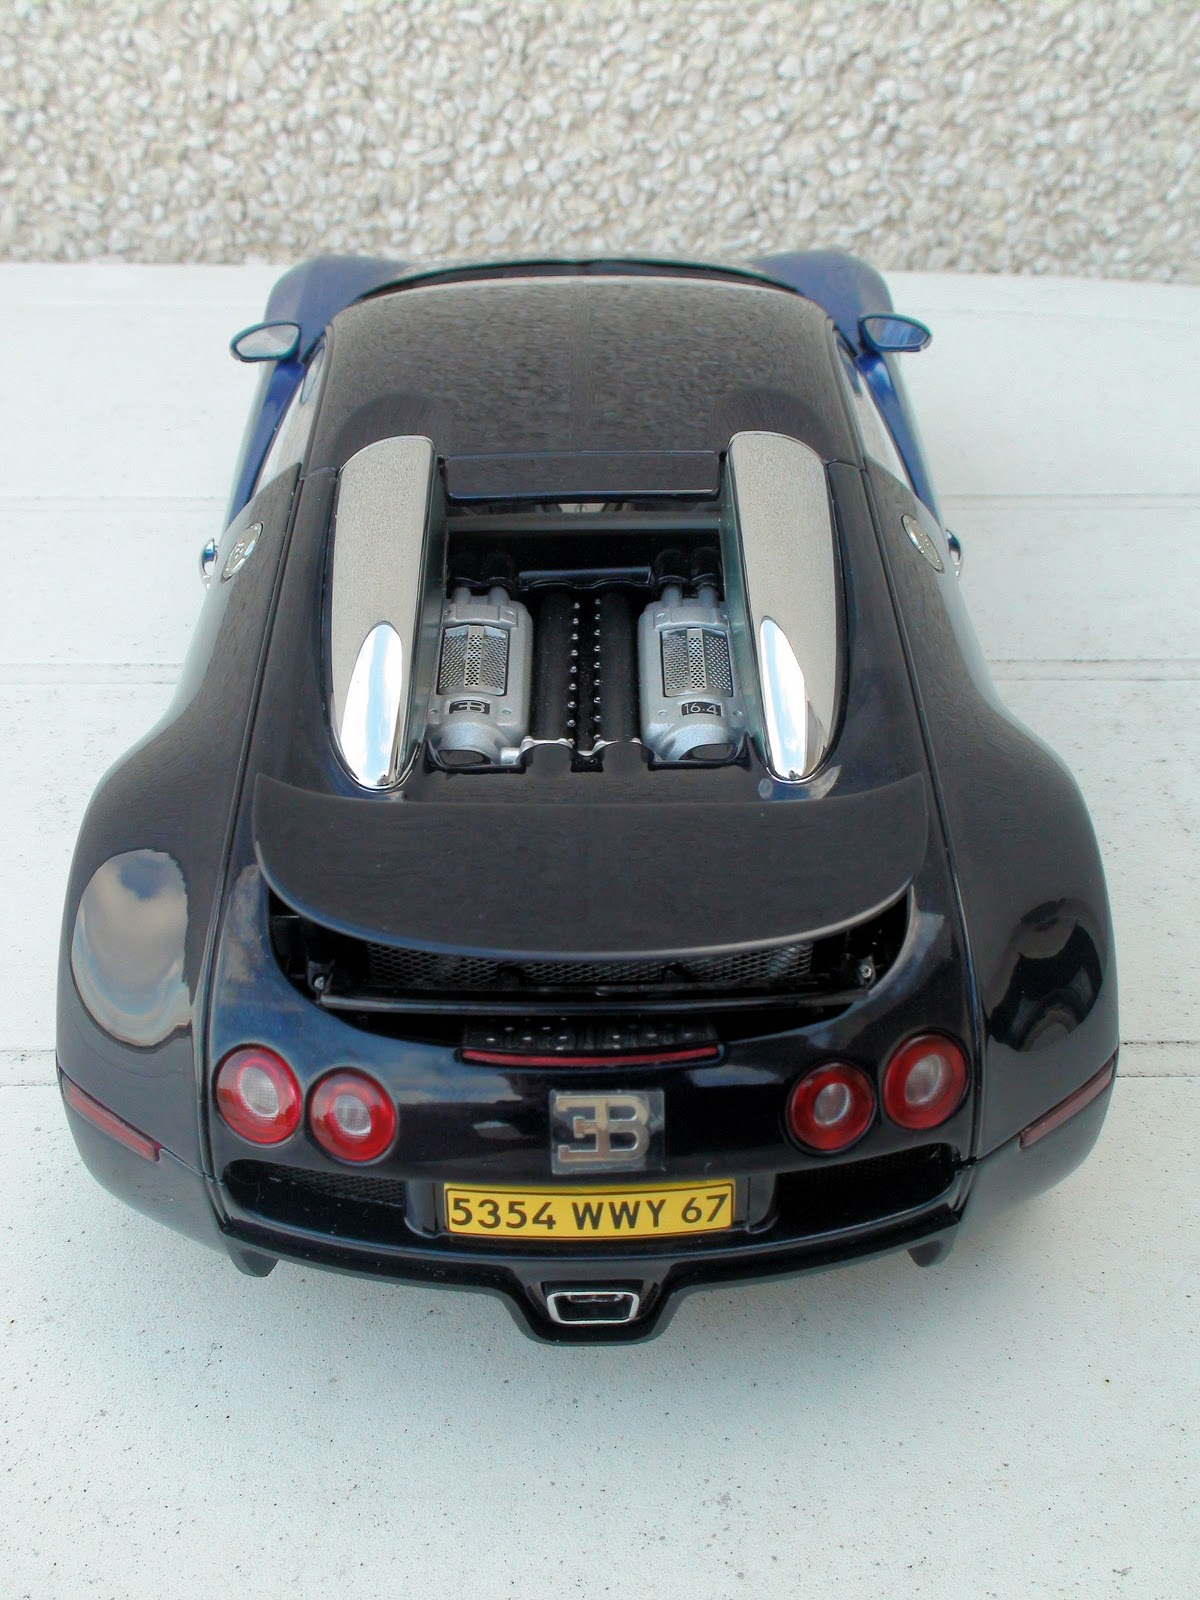 pseudo cars bugatti eb 16 4 veyron production car 2006. Black Bedroom Furniture Sets. Home Design Ideas